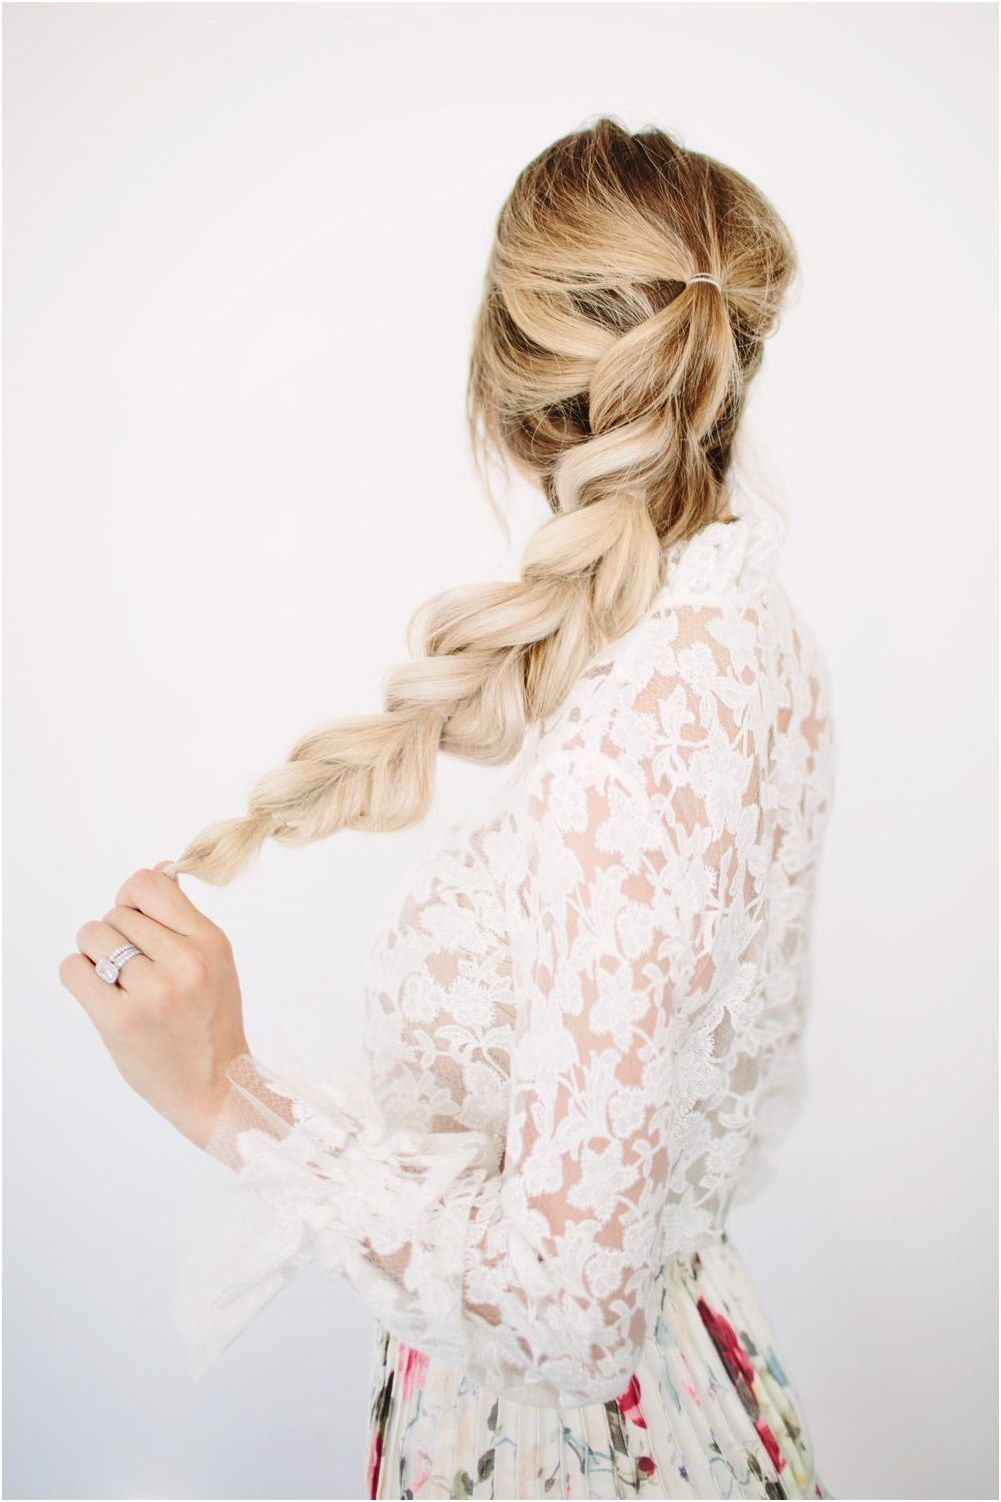 "Check out this simple, easy-to-recreate pull through braid tutorial.�This hairstyle is a lot easier than you think#HairBraiding <a class=""pintag"" href=""/explore/BraidTutorials/"" title=""#BraidTutorials explore Pinterest"">#BraidTutorials</a> click for more.<p><a href=""http://www.homeinteriordesign.org/2018/02/short-guide-to-interior-decoration.html"">Short guide to interior decoration</a></p>"